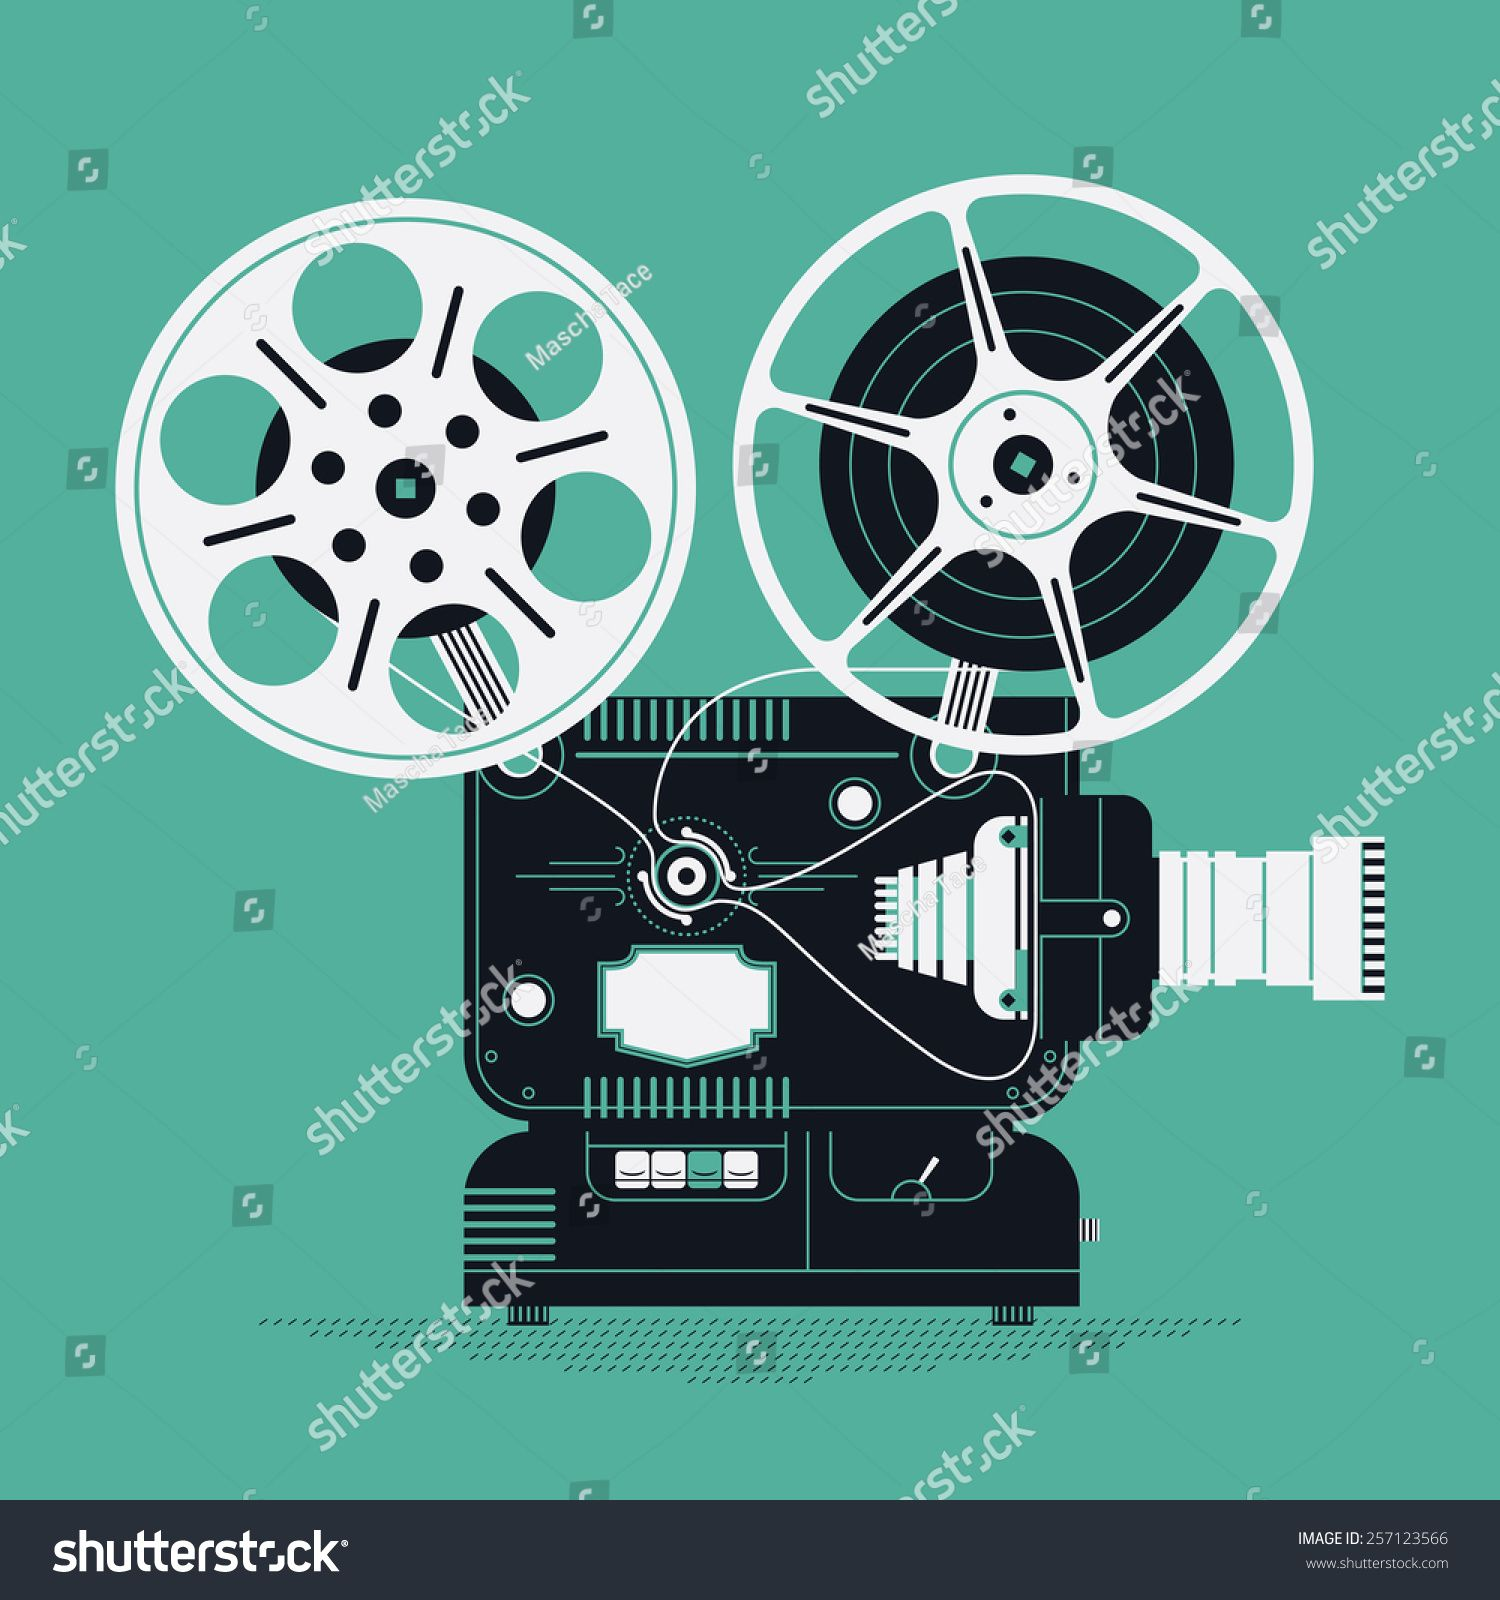 Cool Retro Movie Projector Vector Detailed Illustration Analog Device Cinema Motion Picture Film Projector Wit In 2020 Movie Projector Retro Film Camera Illustration